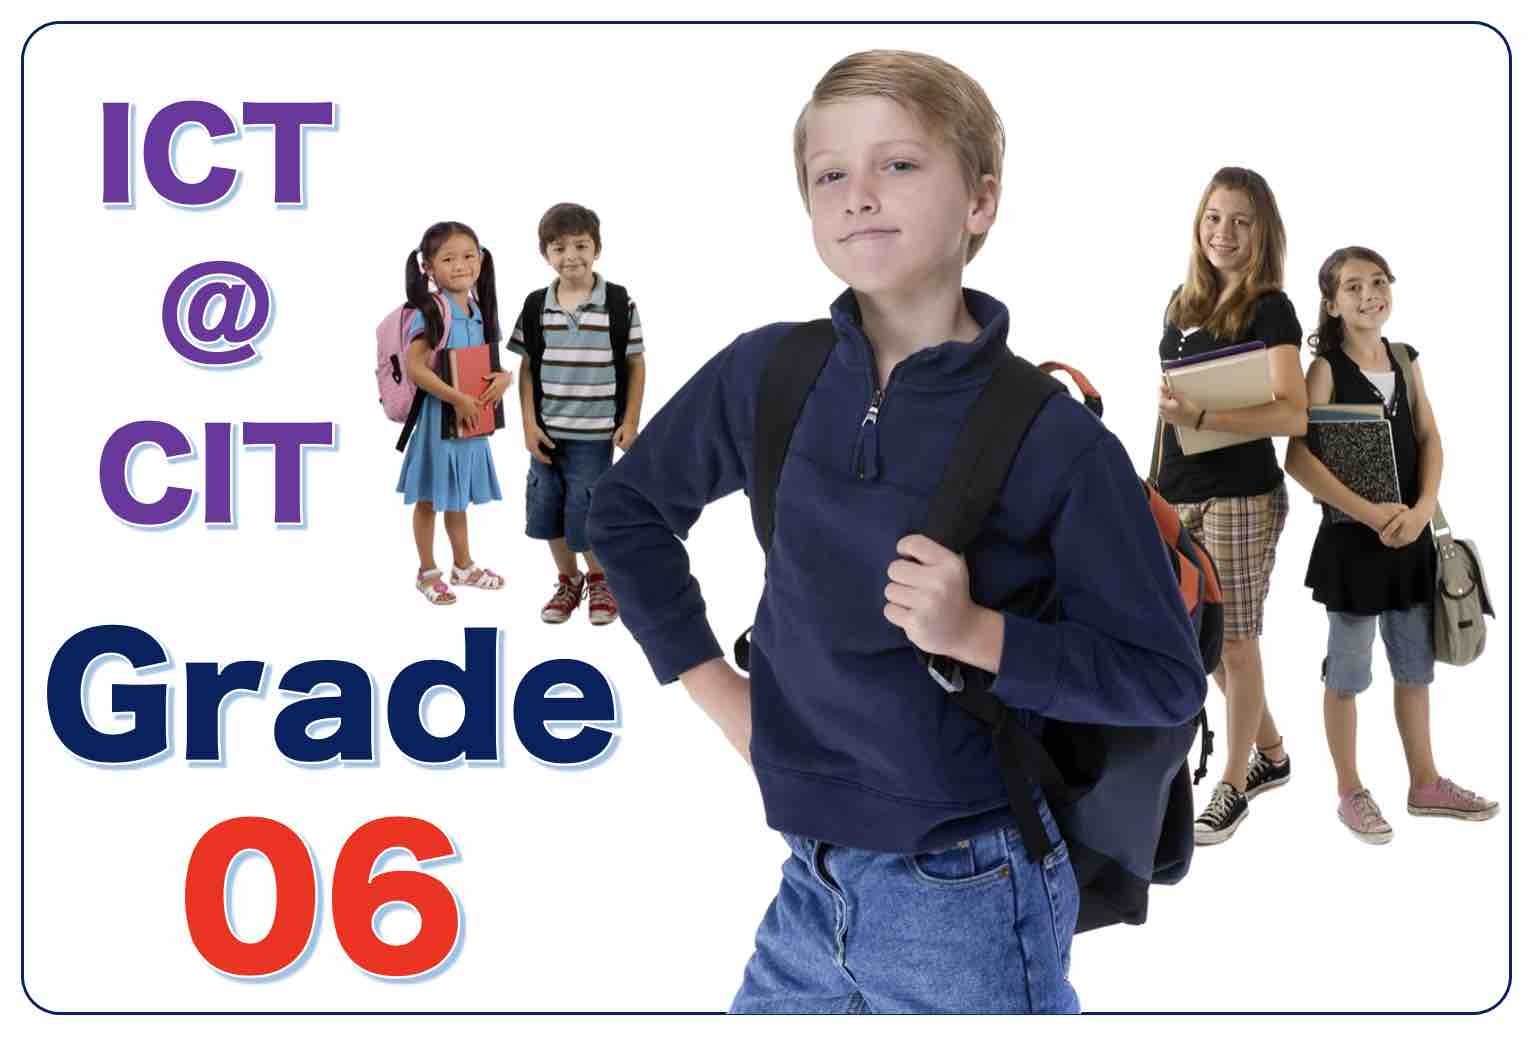 ICT for Grade 6 -  2021